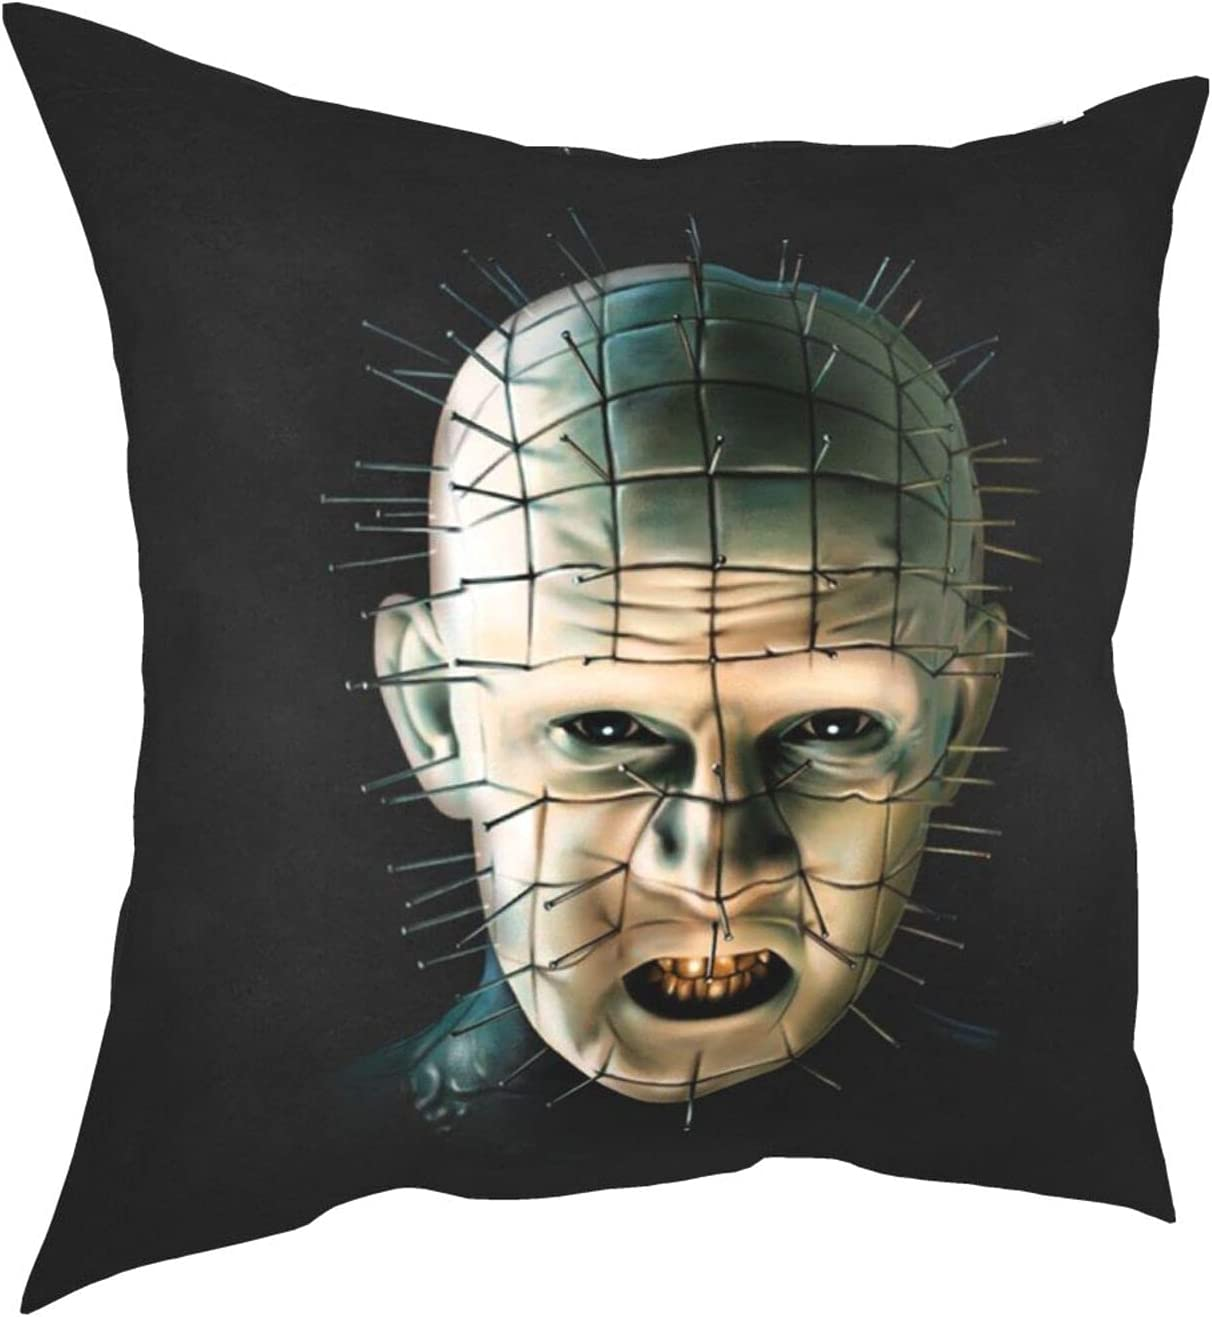 Hpwkpc Pillow Covers Hellrai-Ser Cushion Covers Pillowcase Home Decorations for Sofa Couch Bed Chair 12